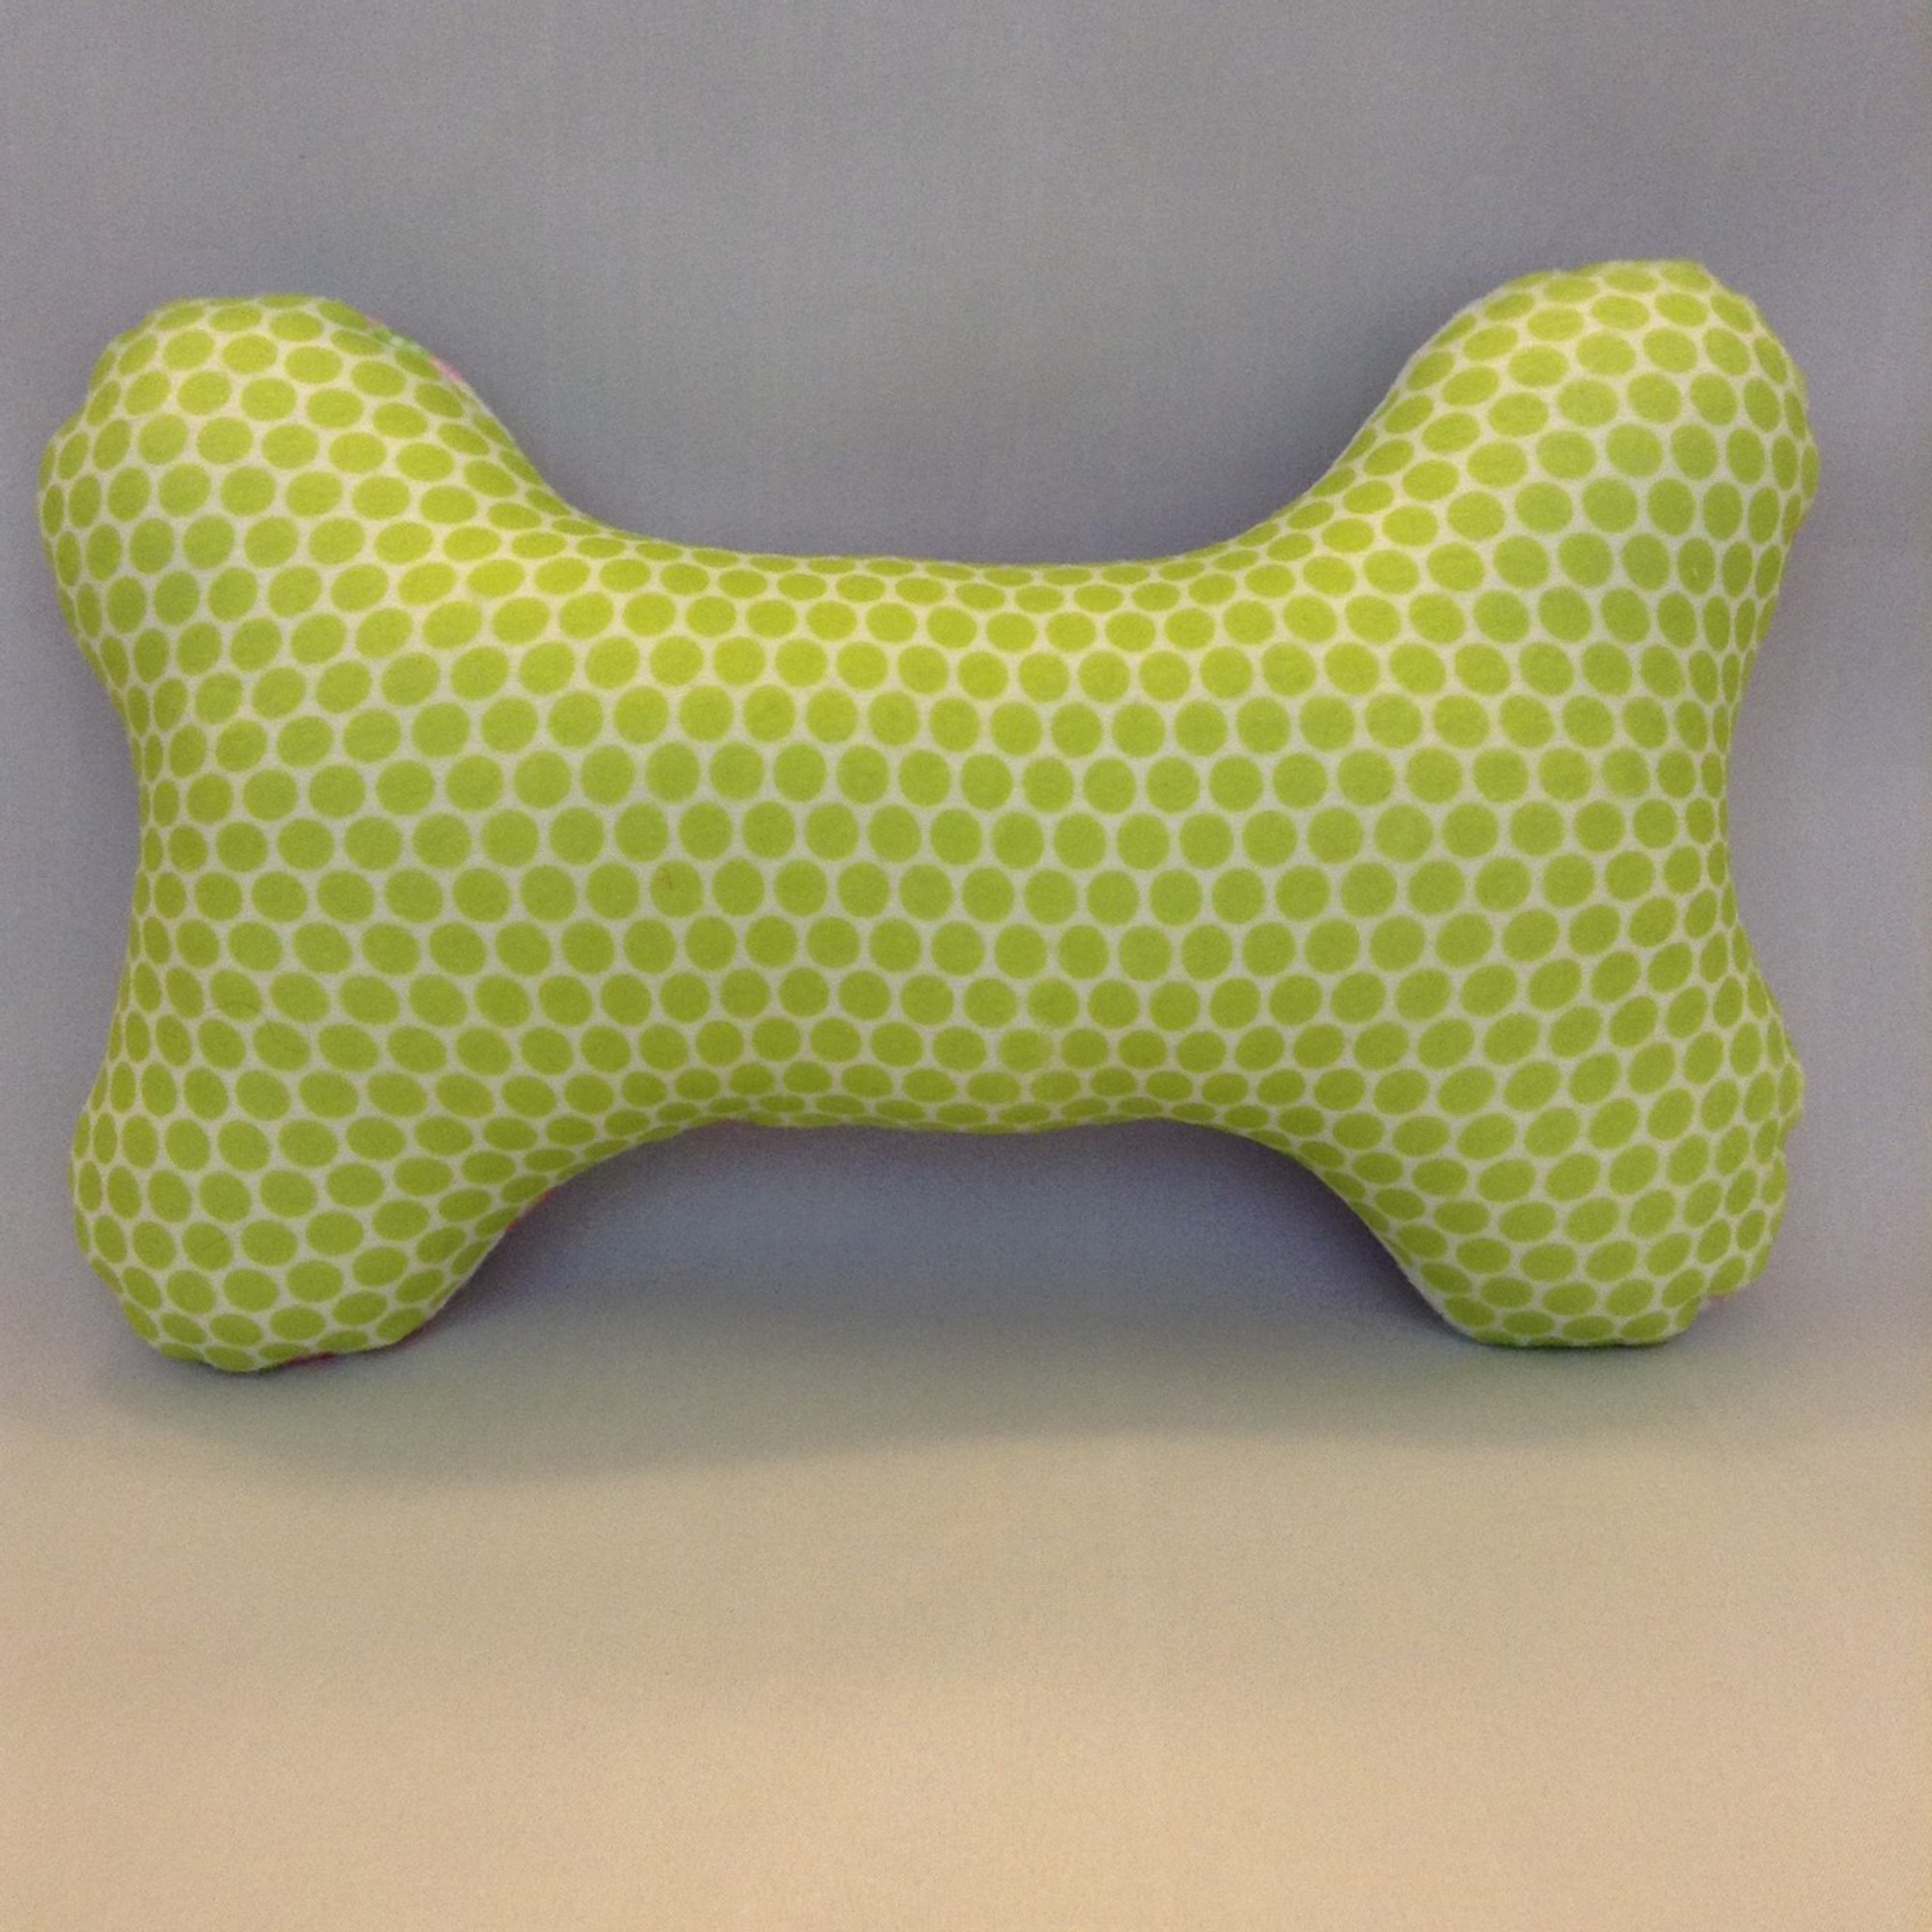 bone shaped pillow imprinted 5 designs personalized